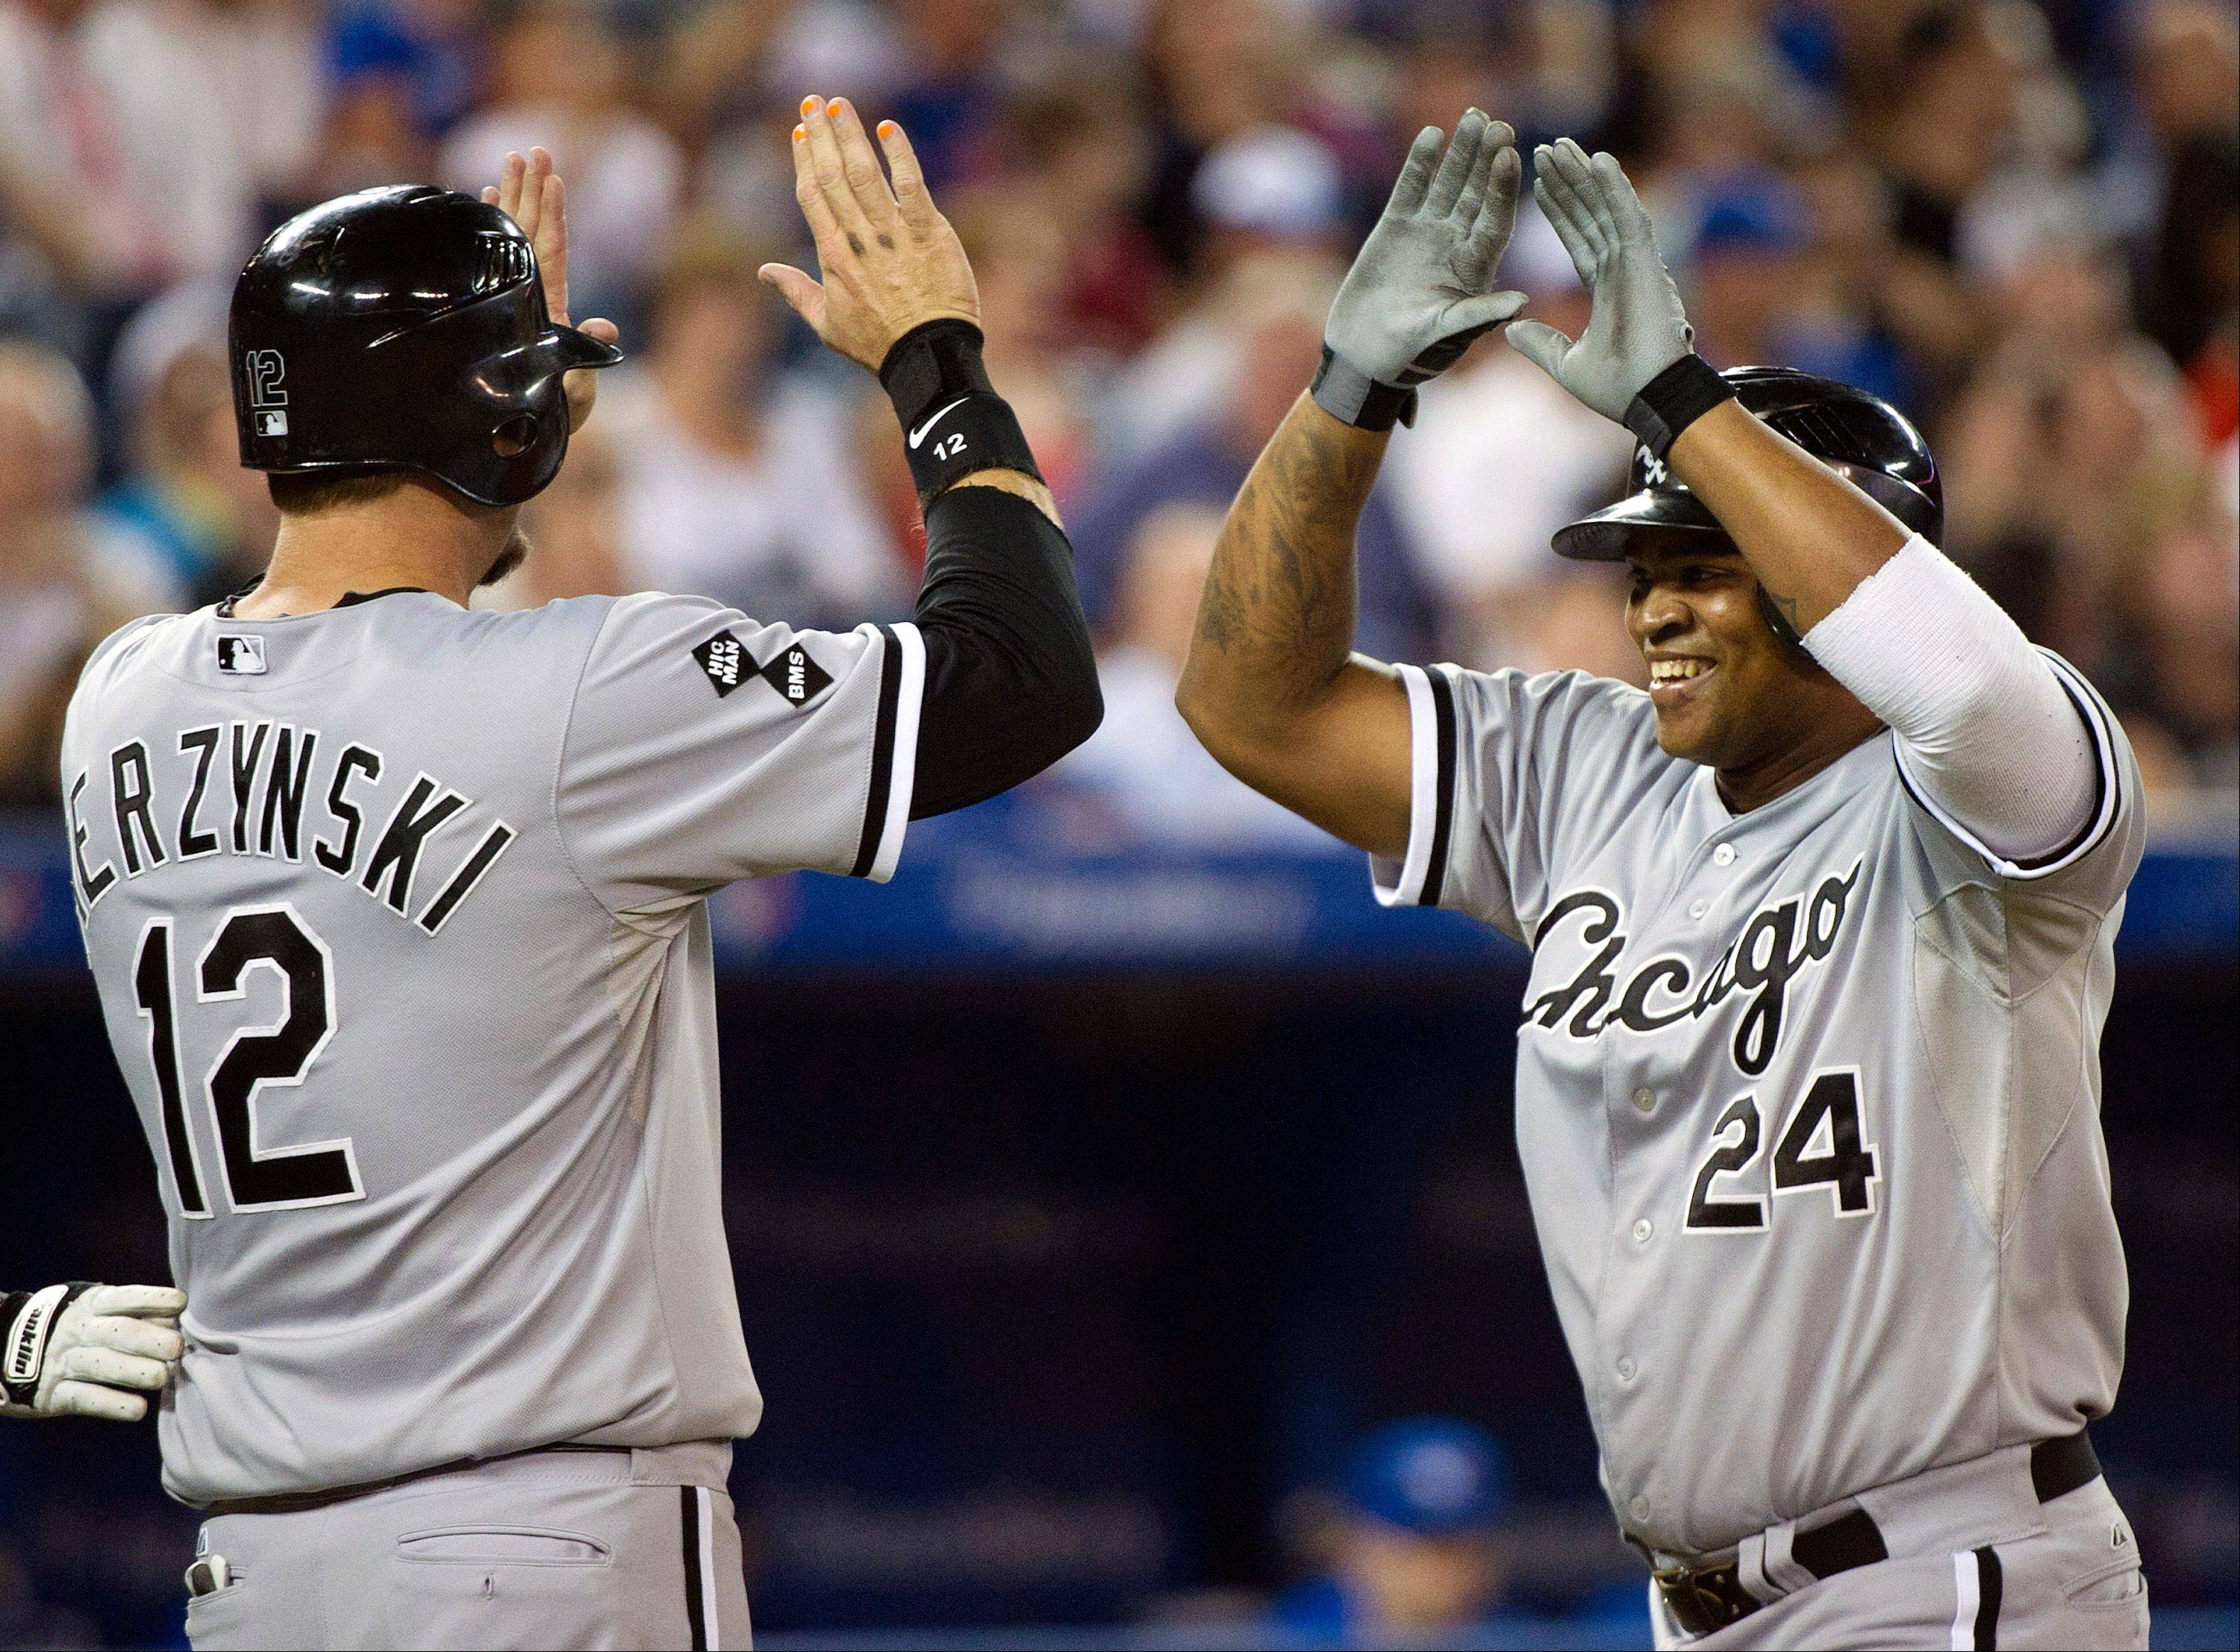 White Sox designated-hitter Dayan Viciedo, right, celebrates his solo home run with teammate A.J. Pierzynski, left, while playing against the Toronto Blue Jays Wednesday during the seventh inning.